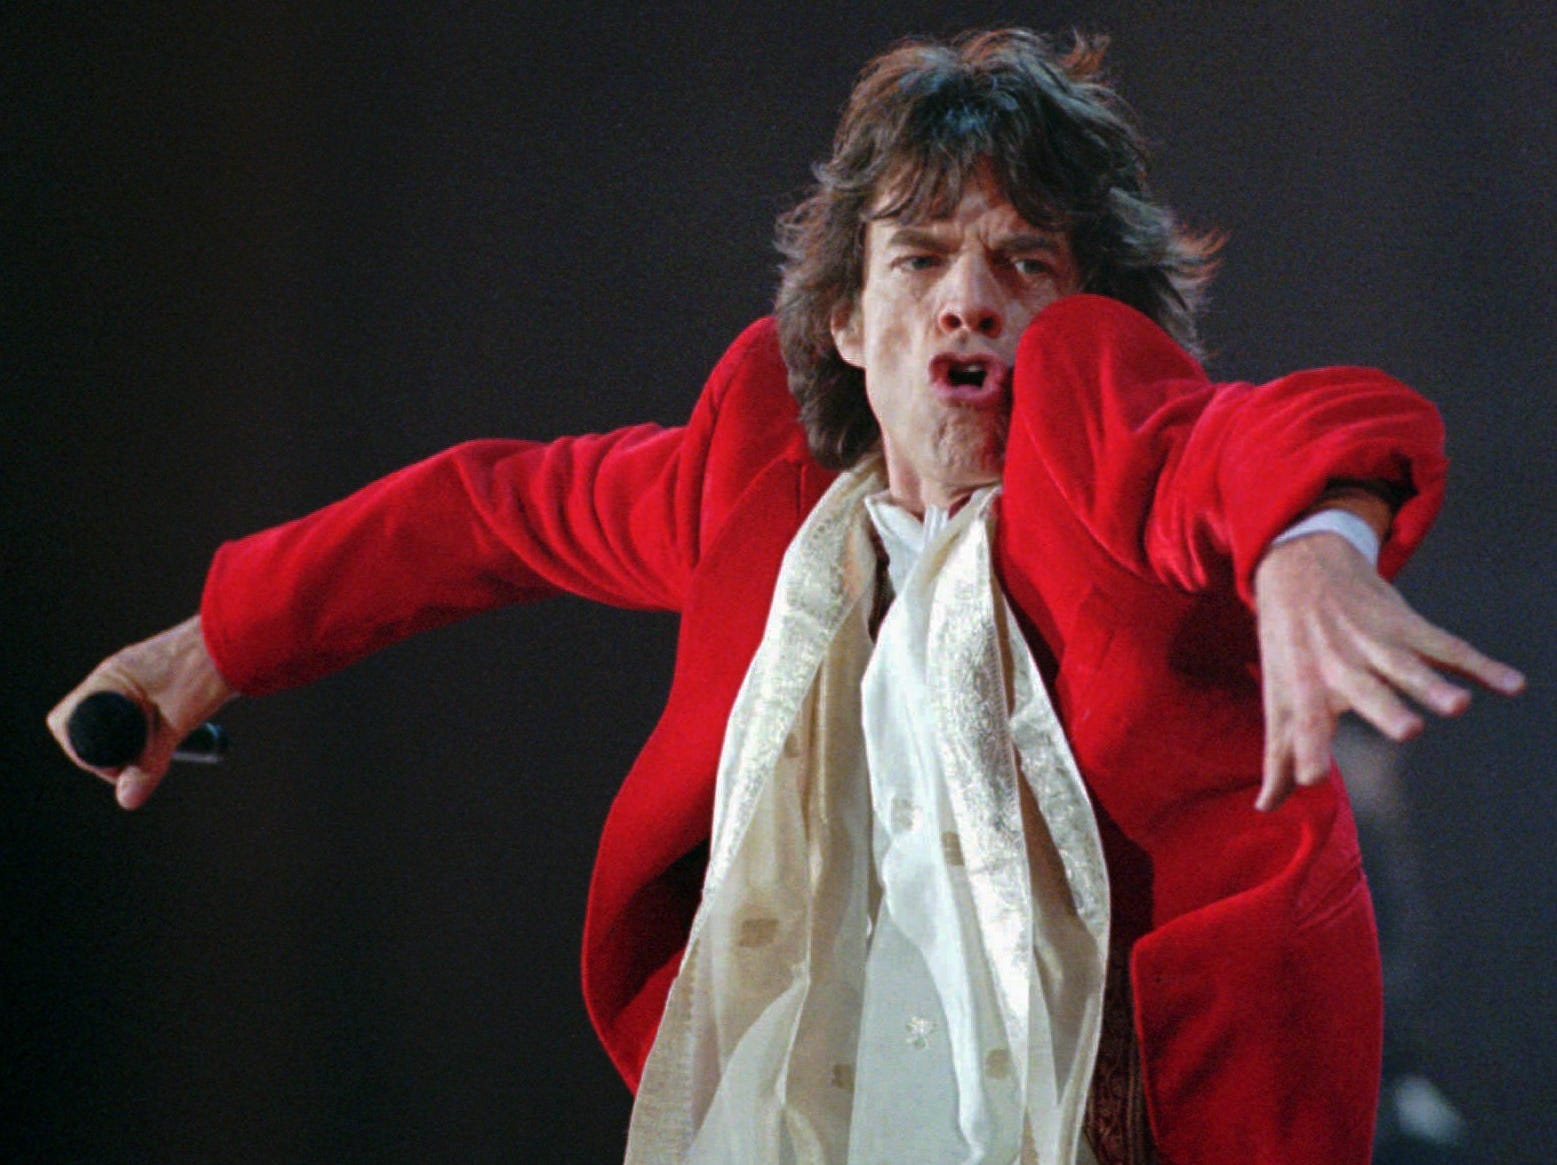 Mick Jagger performs during the Rolling Stones concert Thursday night, Oct. 16, 1997, at Giants Stadium in East Rutherford, N.J.  (AP Photo/Bill Kostroun) ORG XMIT: ERA105